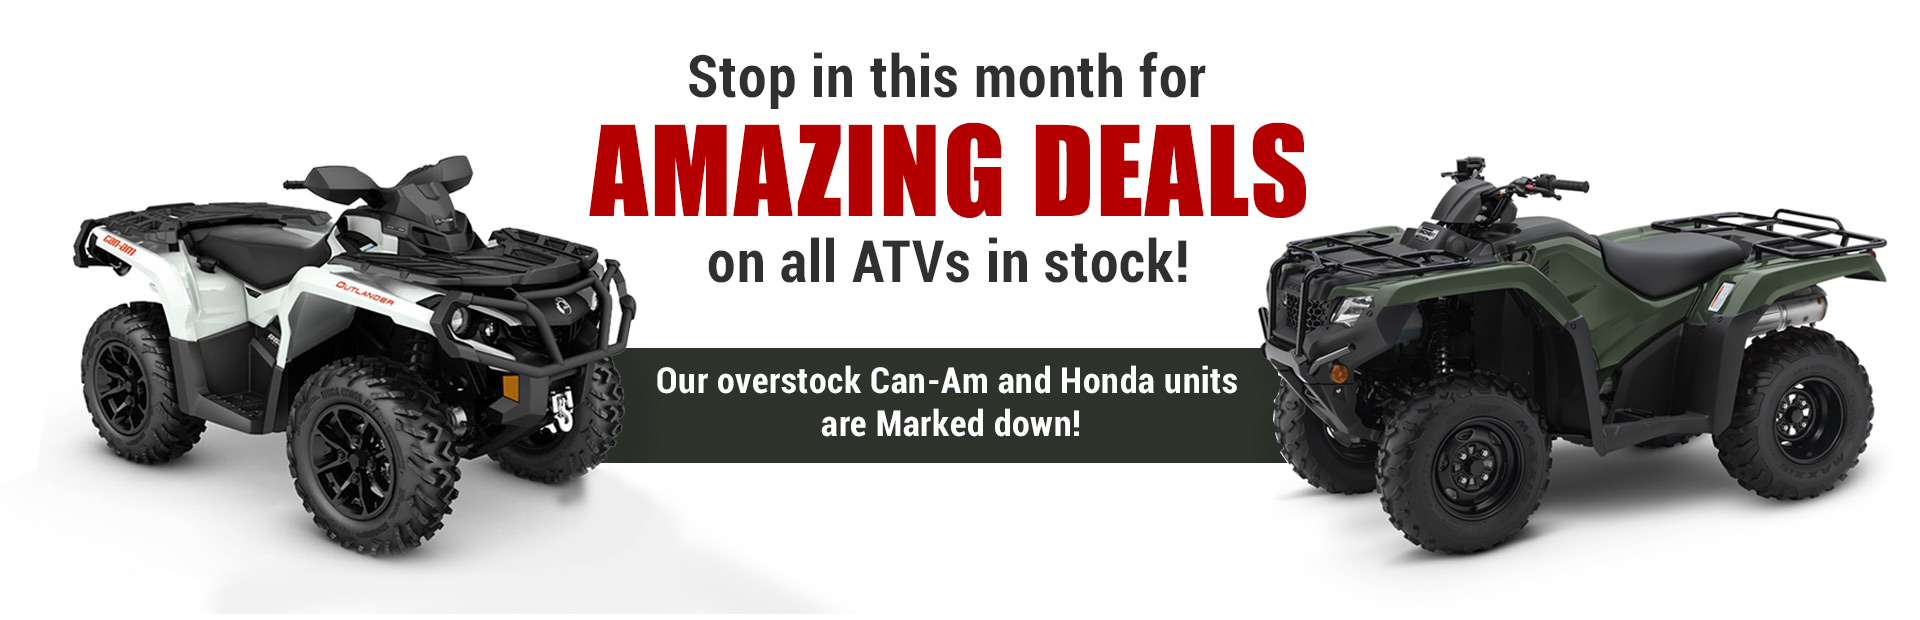 Stop in this month for amazing deals on all ATVs in stock! Our overstock Can-Am and Honda units are marked down!